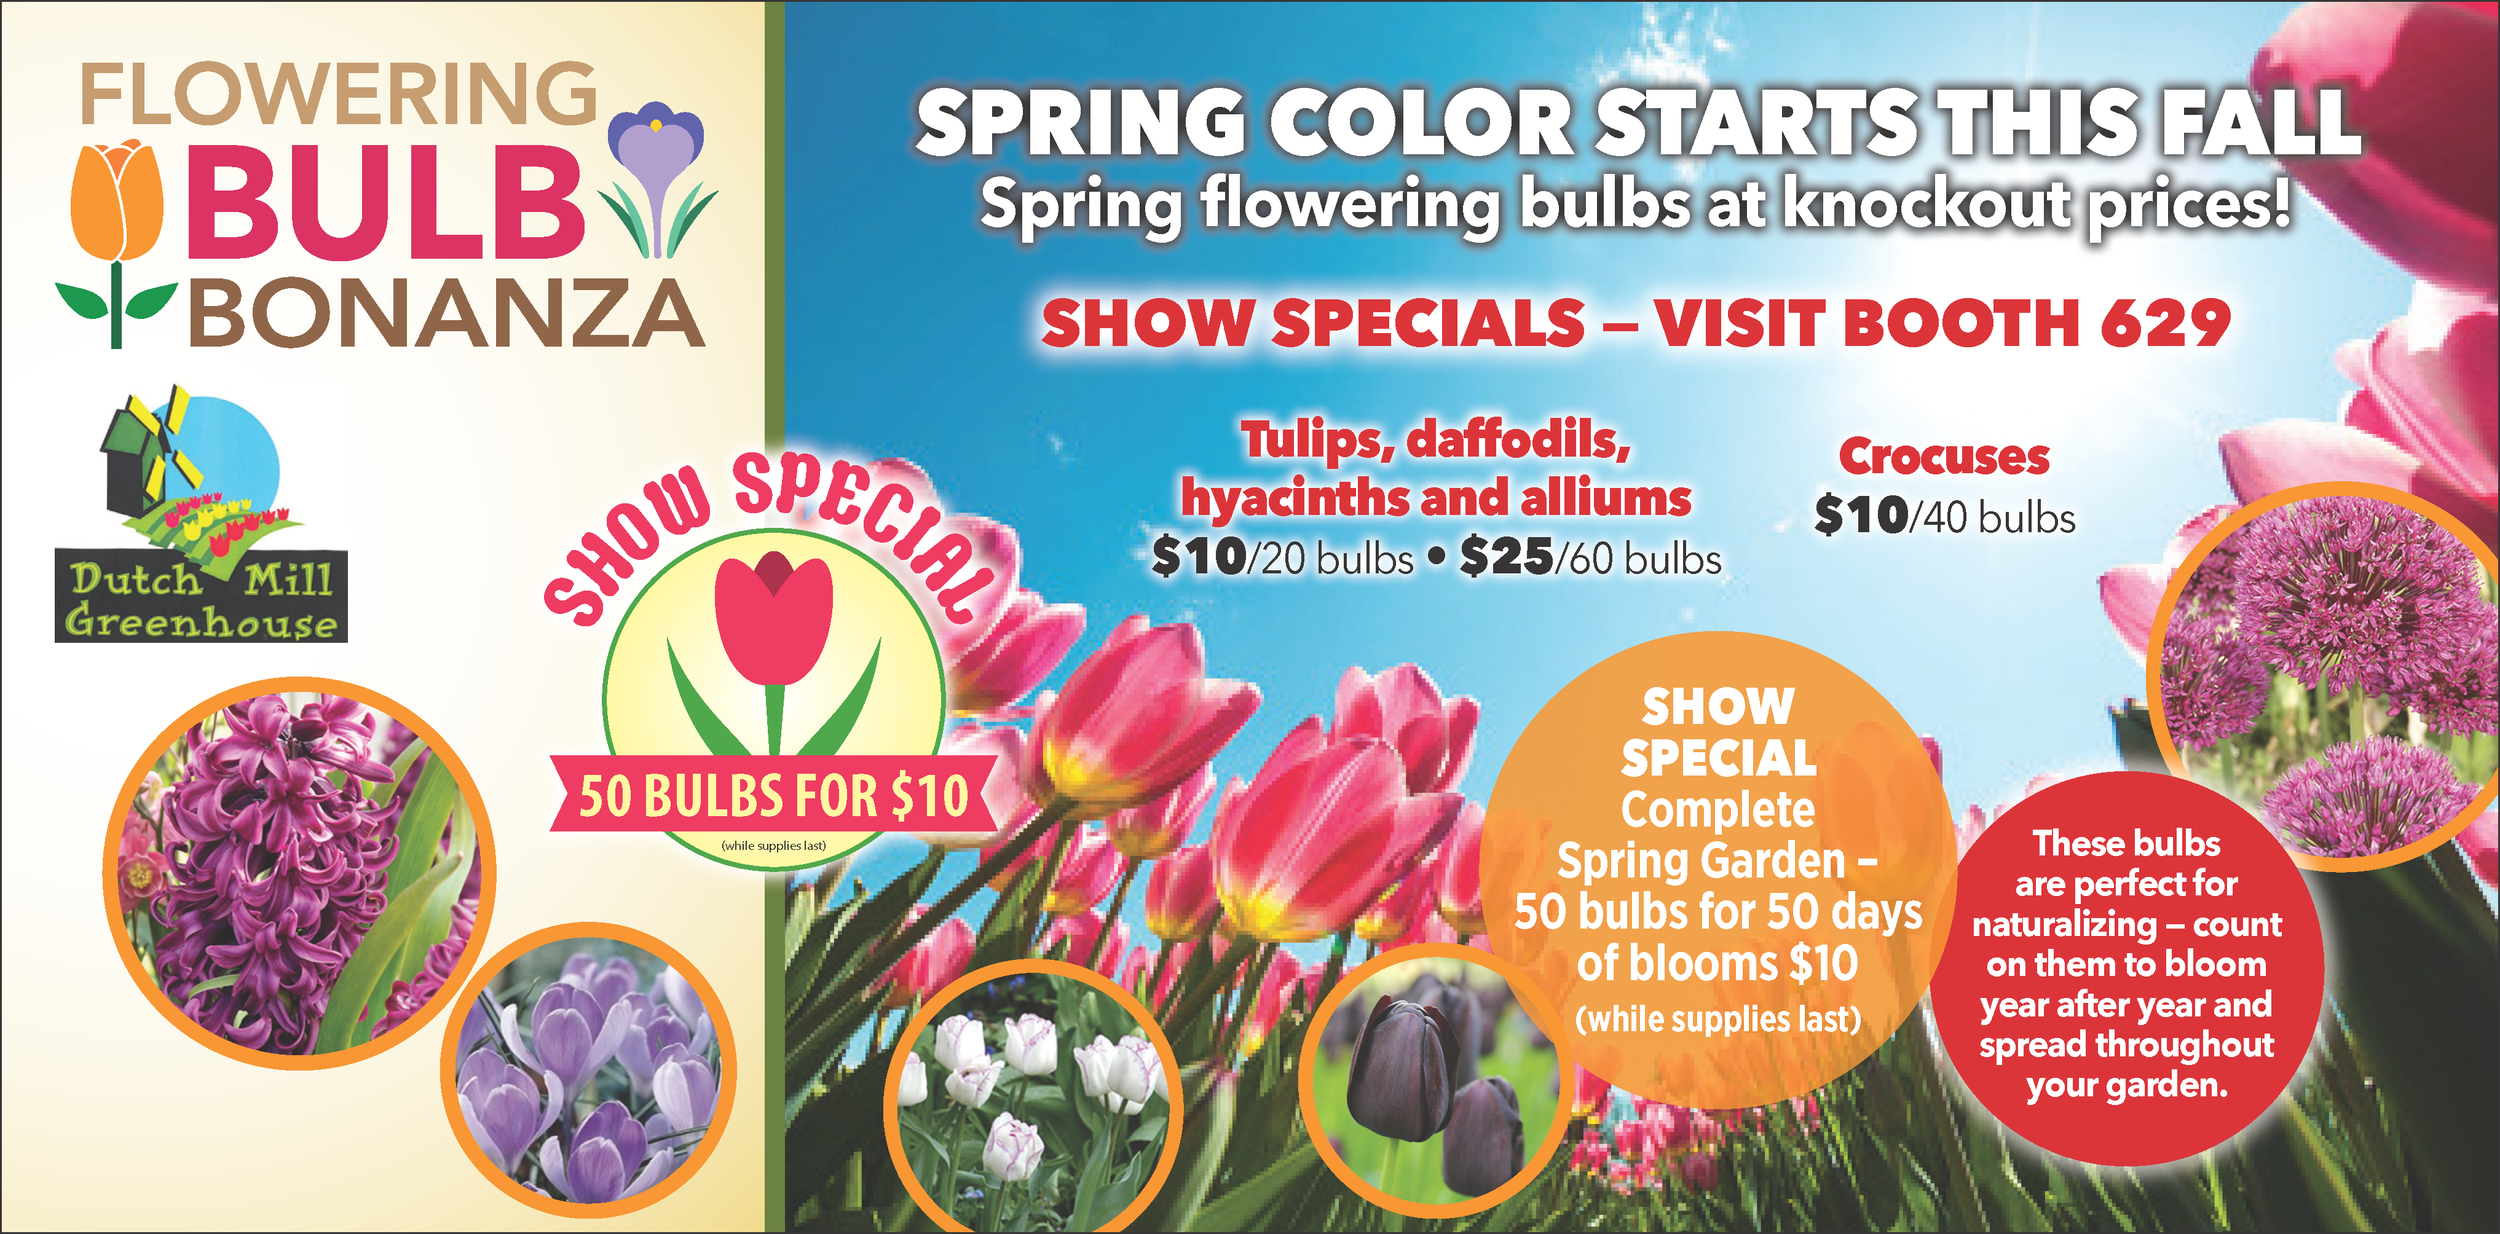 Flowering Bulbs at Wholesale Prices - These flowering bulbs are imported straight from Holland by Leo Berbee Bulb Company. Brighten up your spring garden and stock up with low wholesale prices on tulips, daffodils, hyacinths, alliumns, and crocuses.!